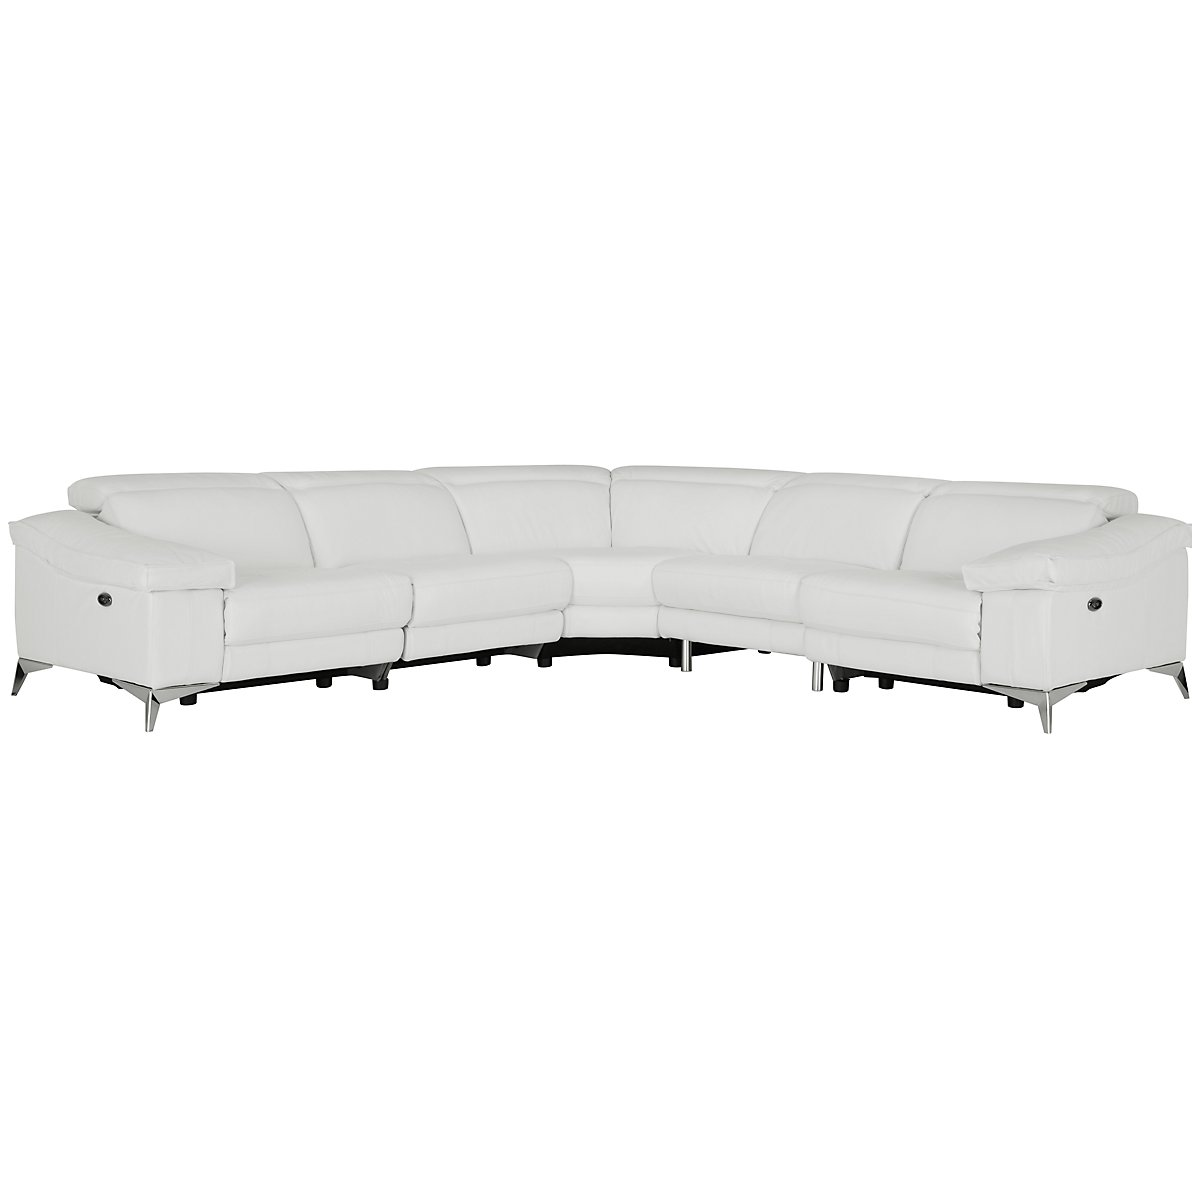 is popular sofas and awesome always sectional it s elegant furniture under for a espresso simple because easy vinyl color